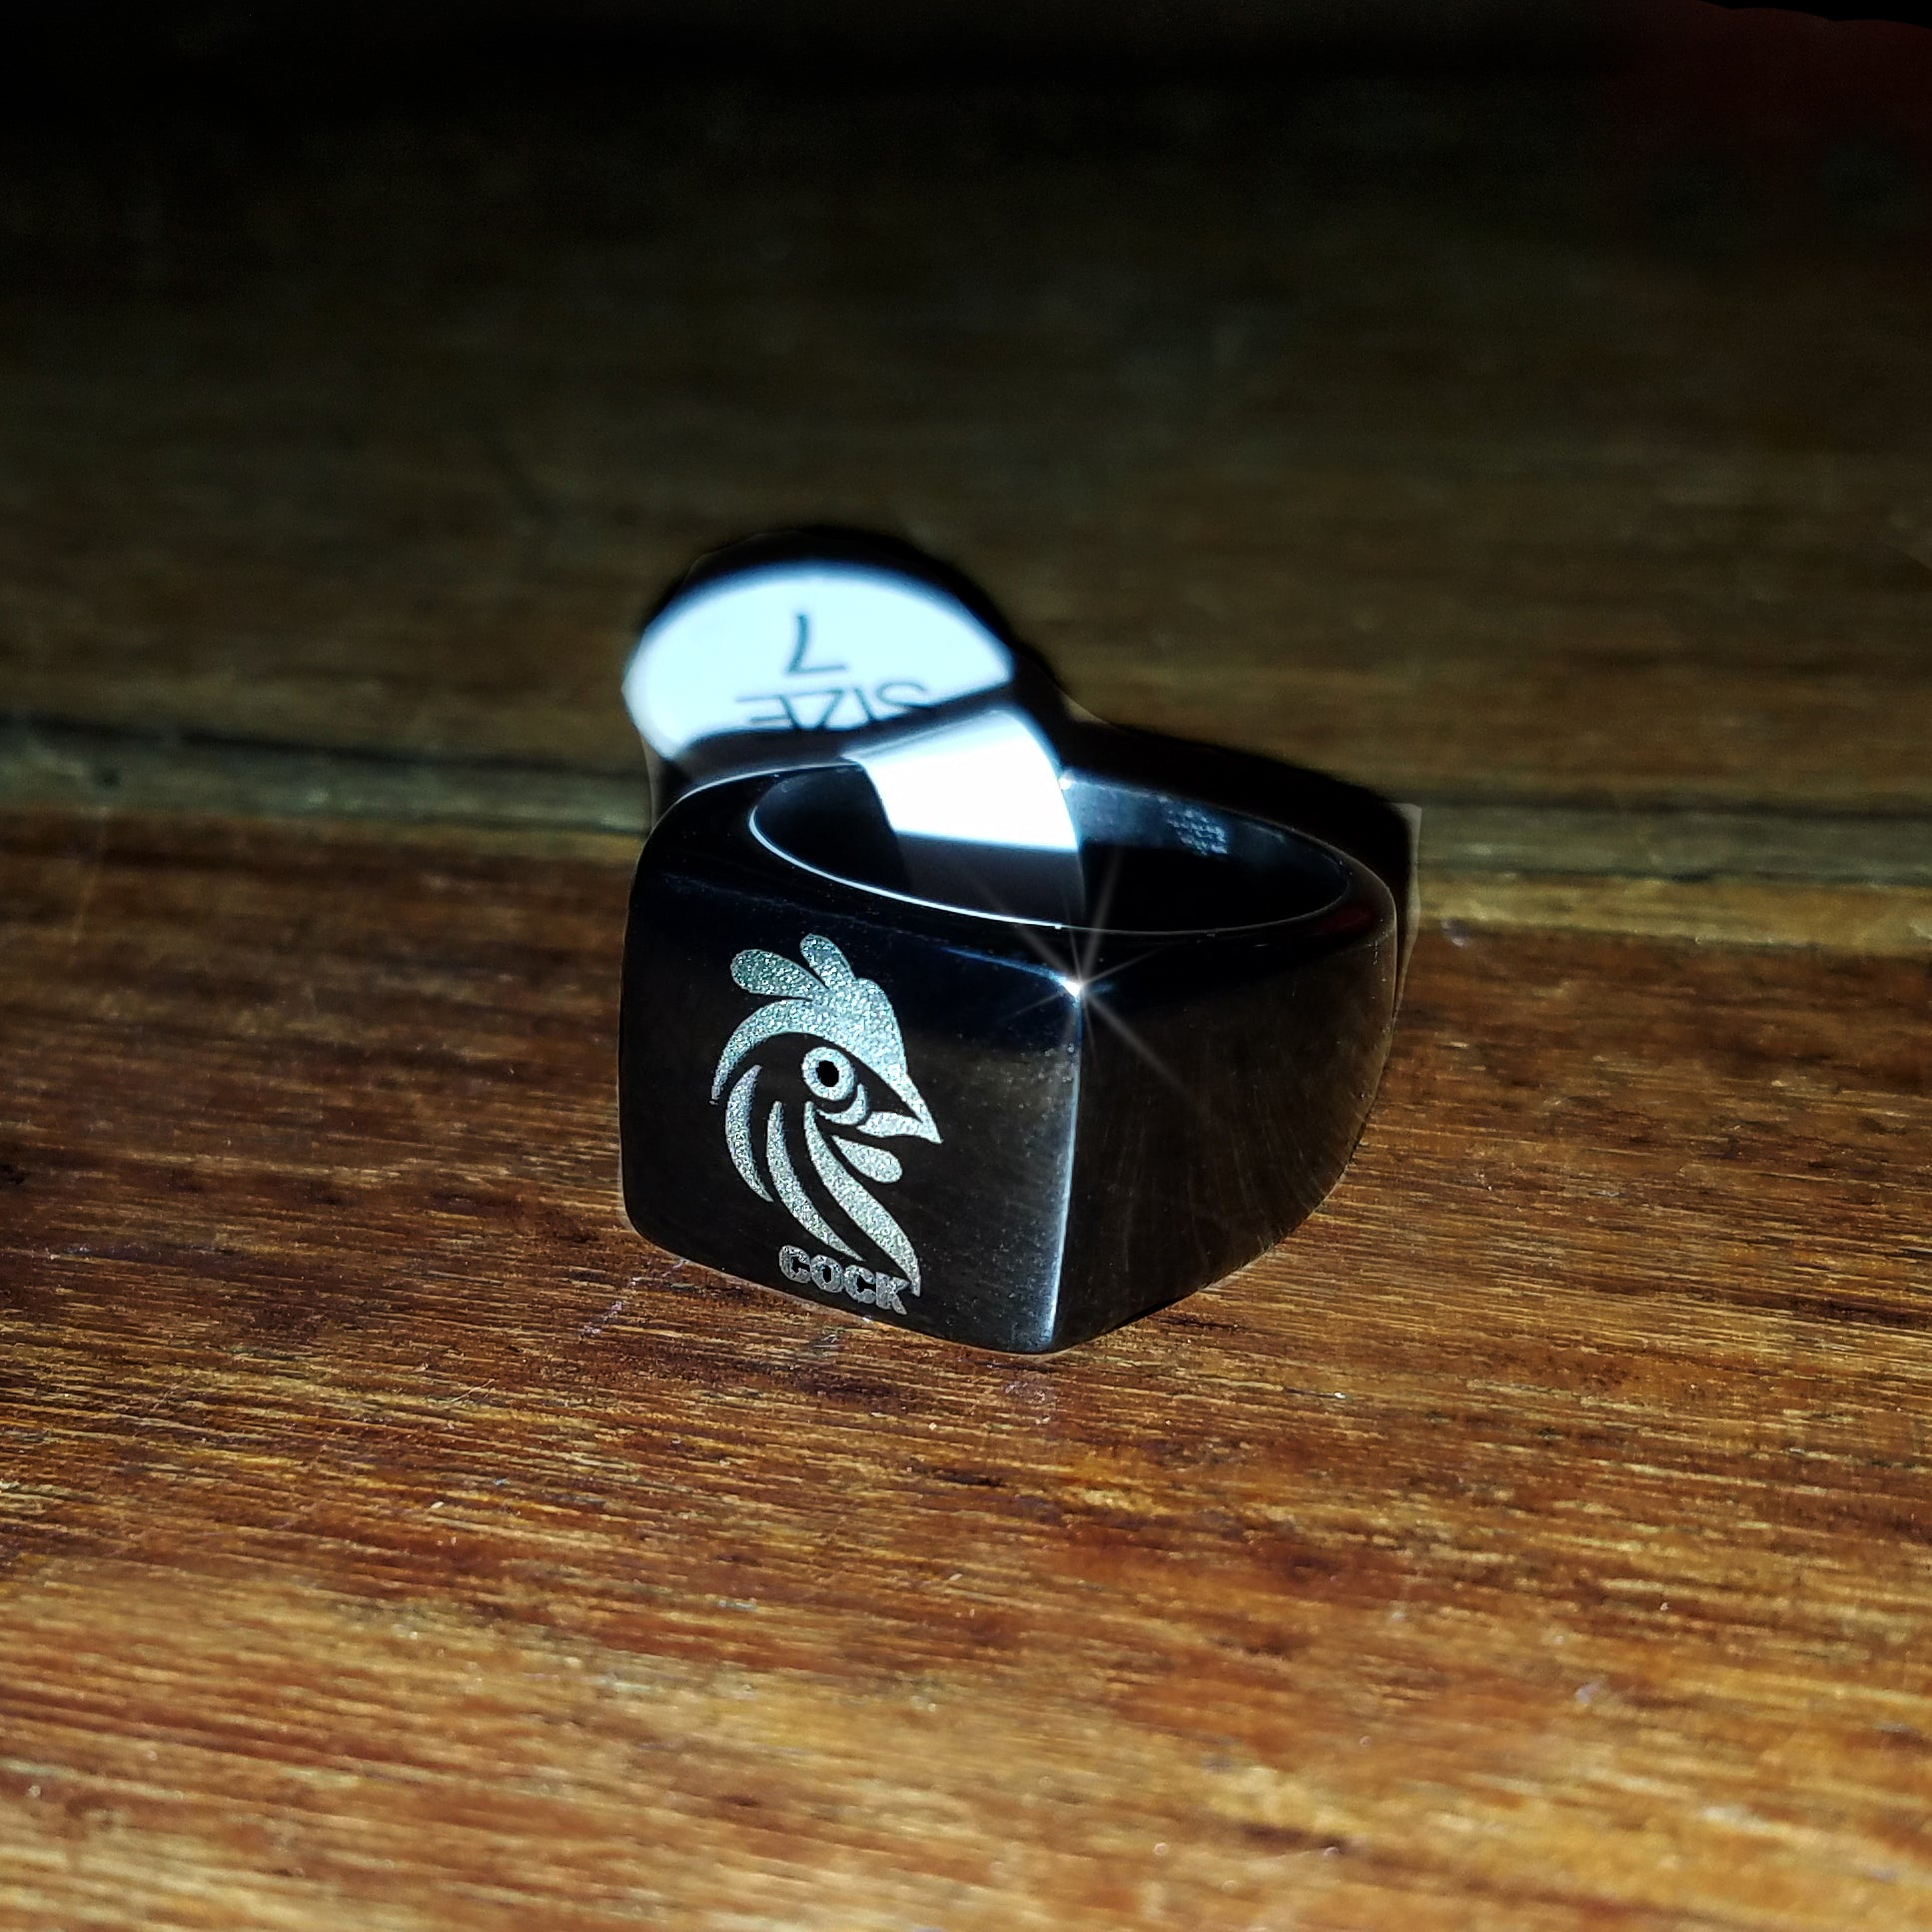 Cock brand Engraved ring